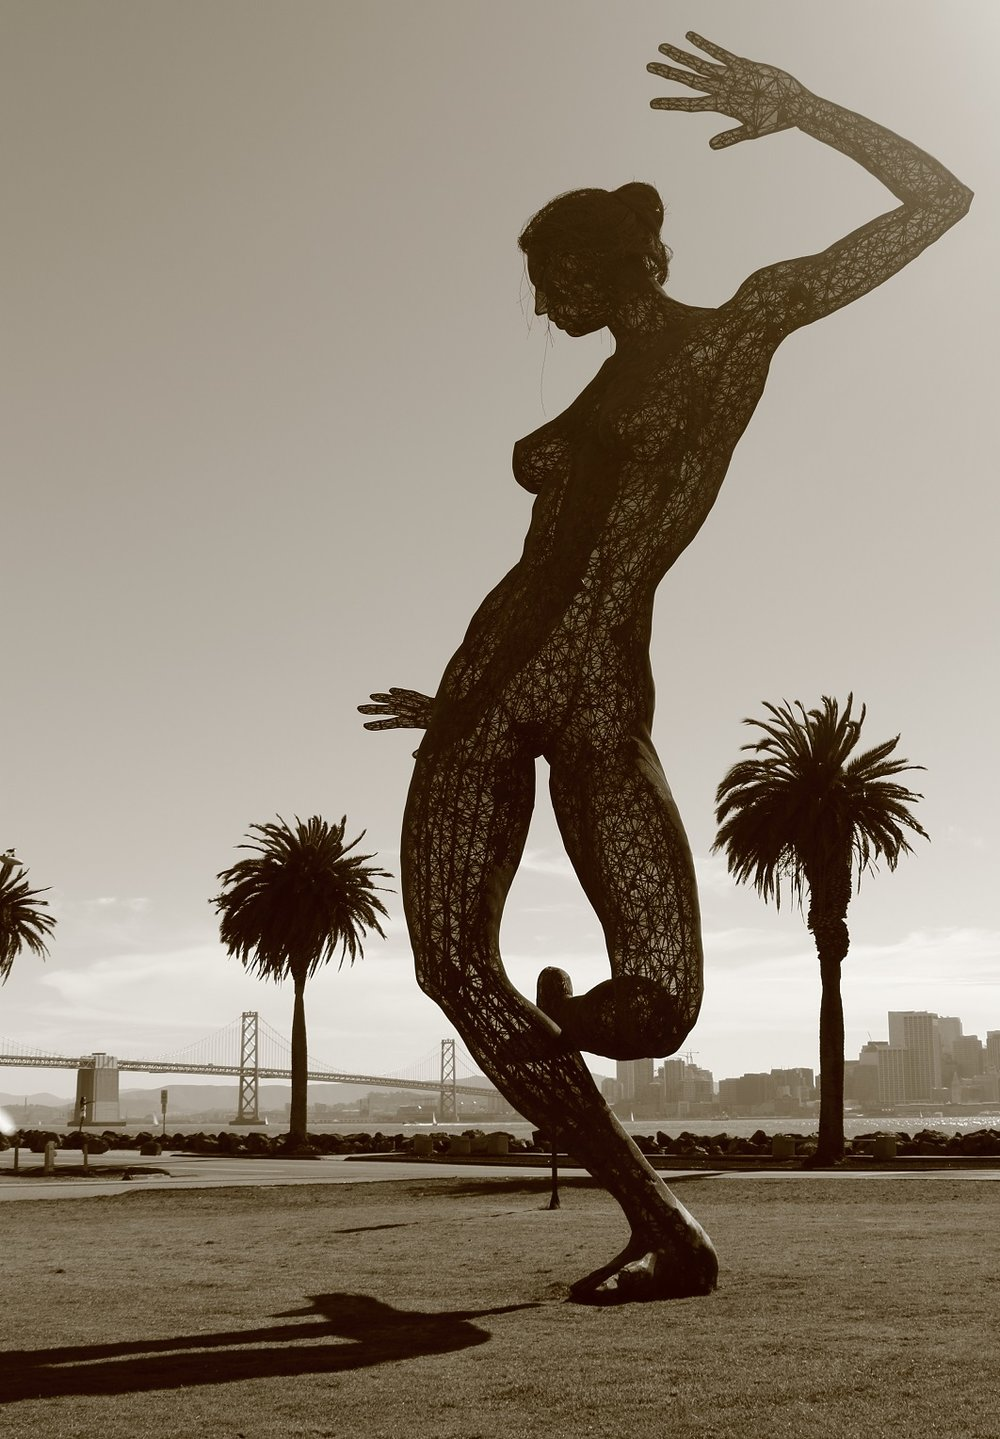 The Dancer - this sculpture is no longer at this location - she is beautiful and strong and amazing.